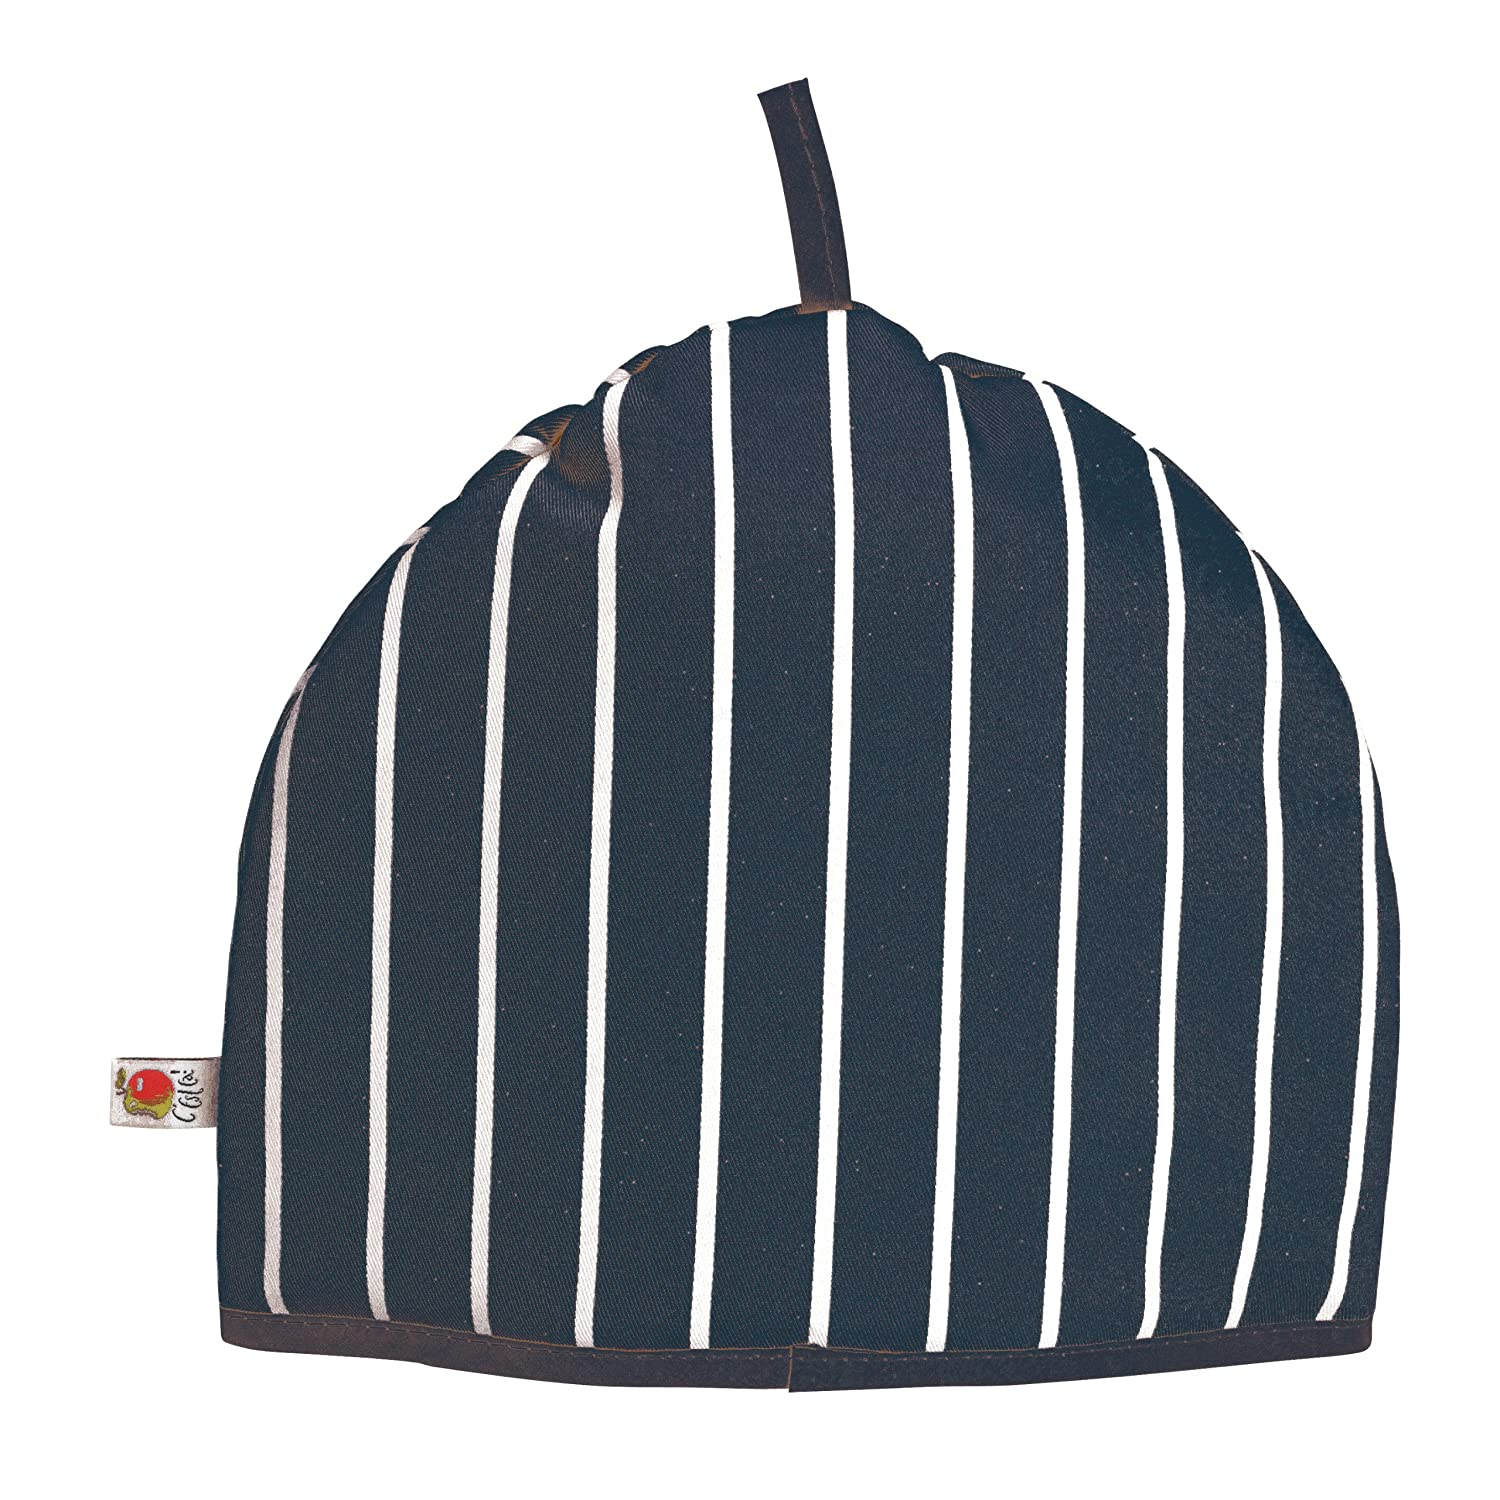 C'est Ca Butchers Stripe Tea Cosy, Navy and White Stripe C'est Ca Butchers Stripe 822037